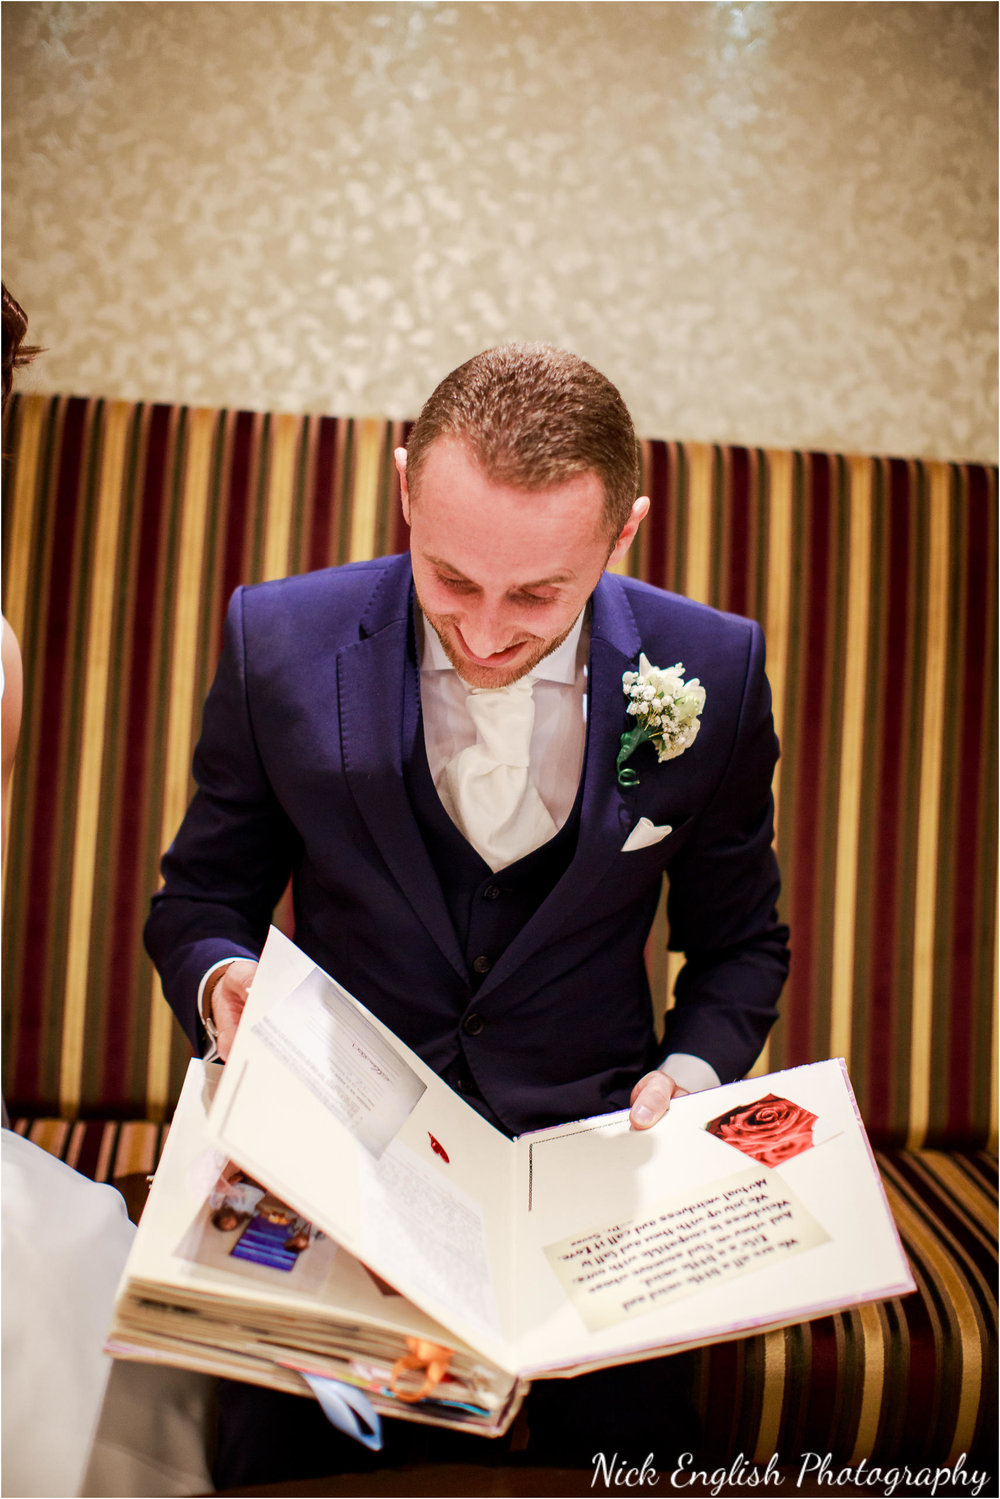 Emily David Wedding Photographs at Barton Grange Preston by Nick English Photography 161jpg.jpeg